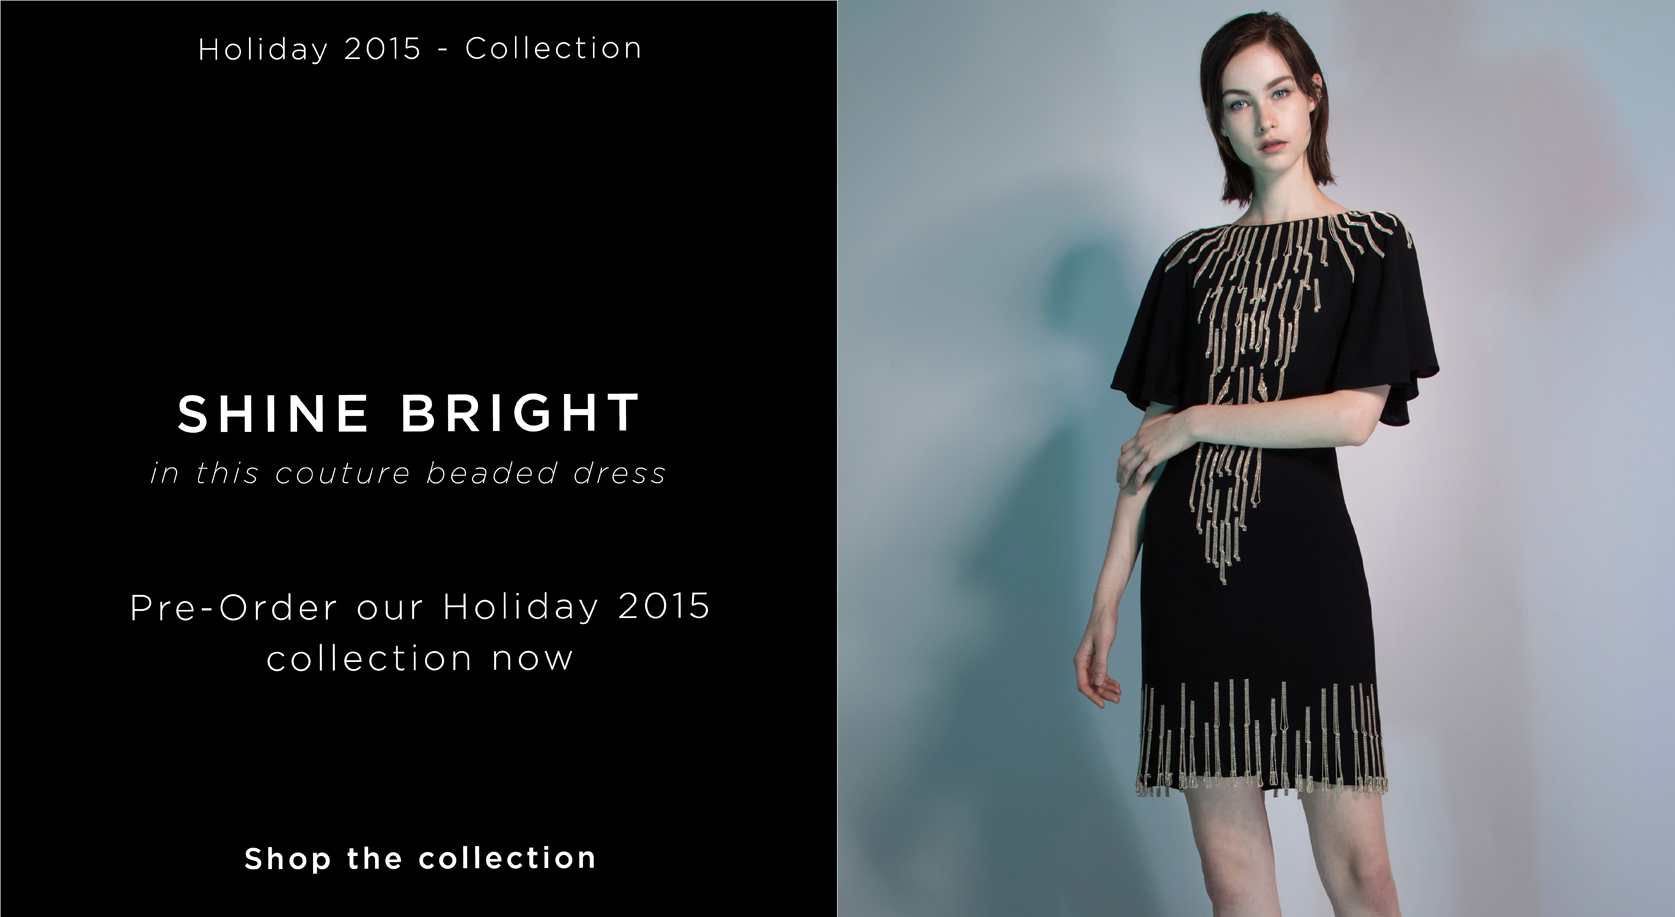 Shine Bright. Preorder Holiday 2015